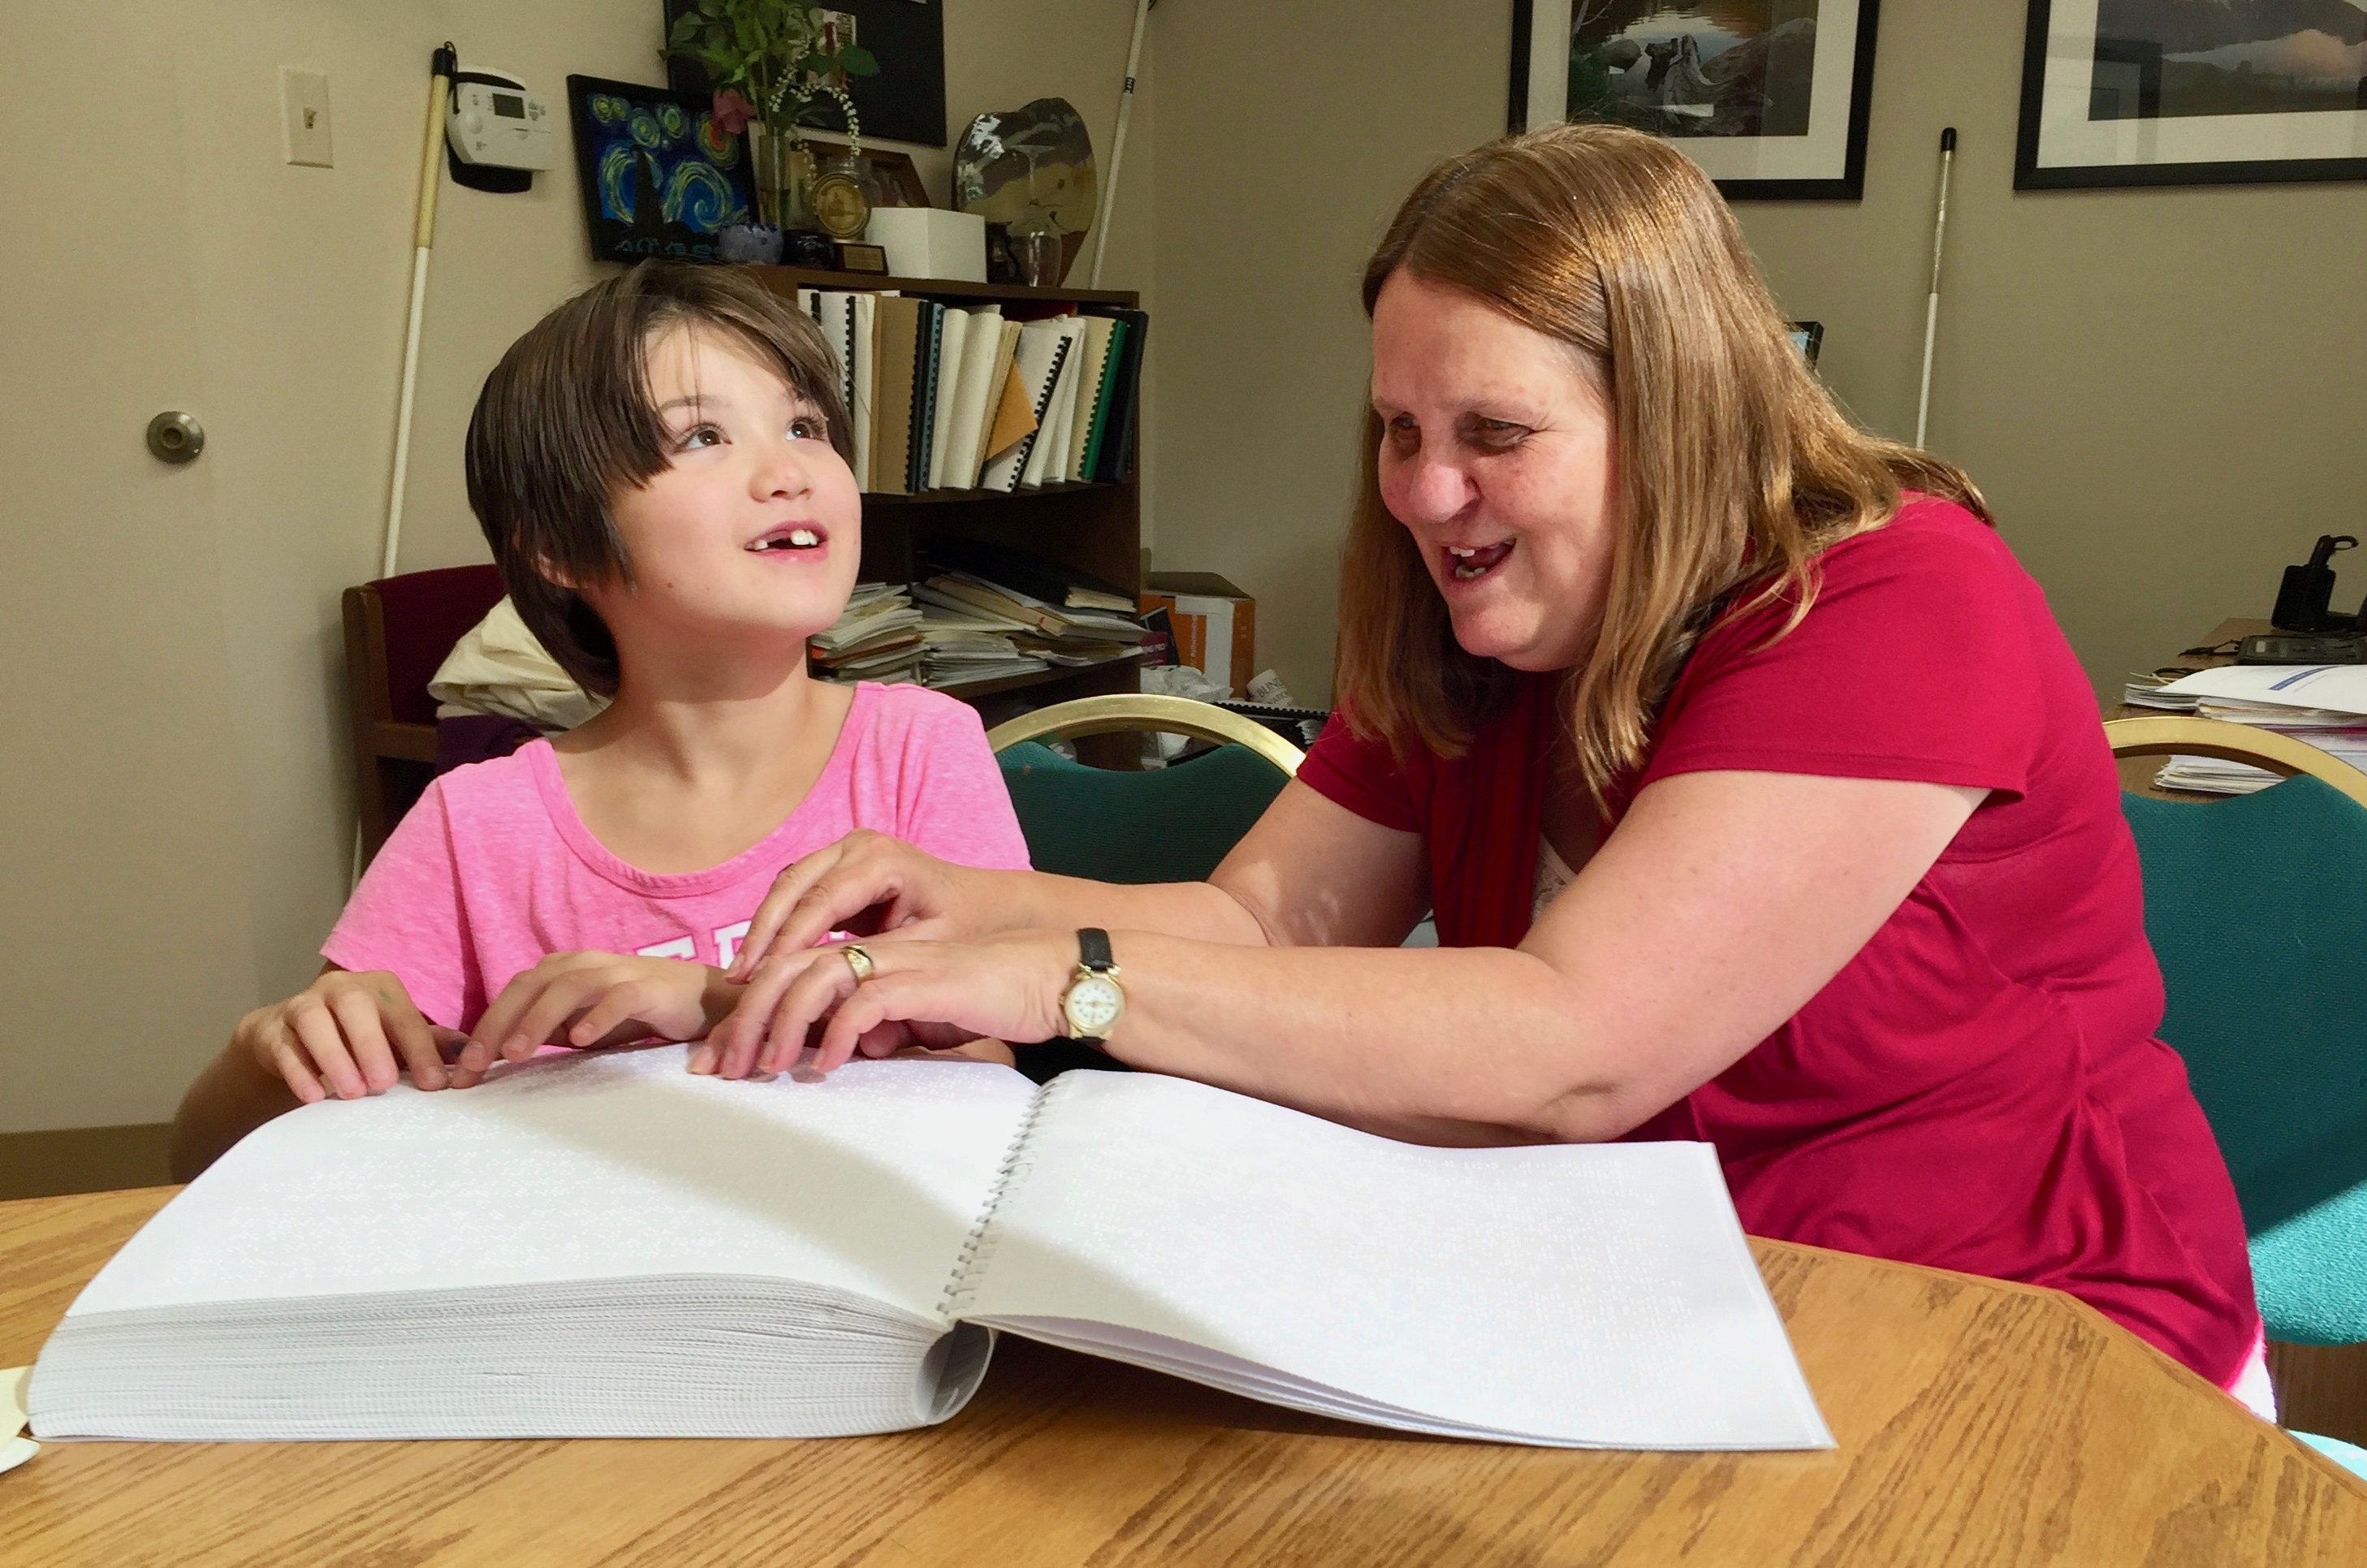 a smiling girl with missing front teeth and a woman with their hands on the same page of Braille